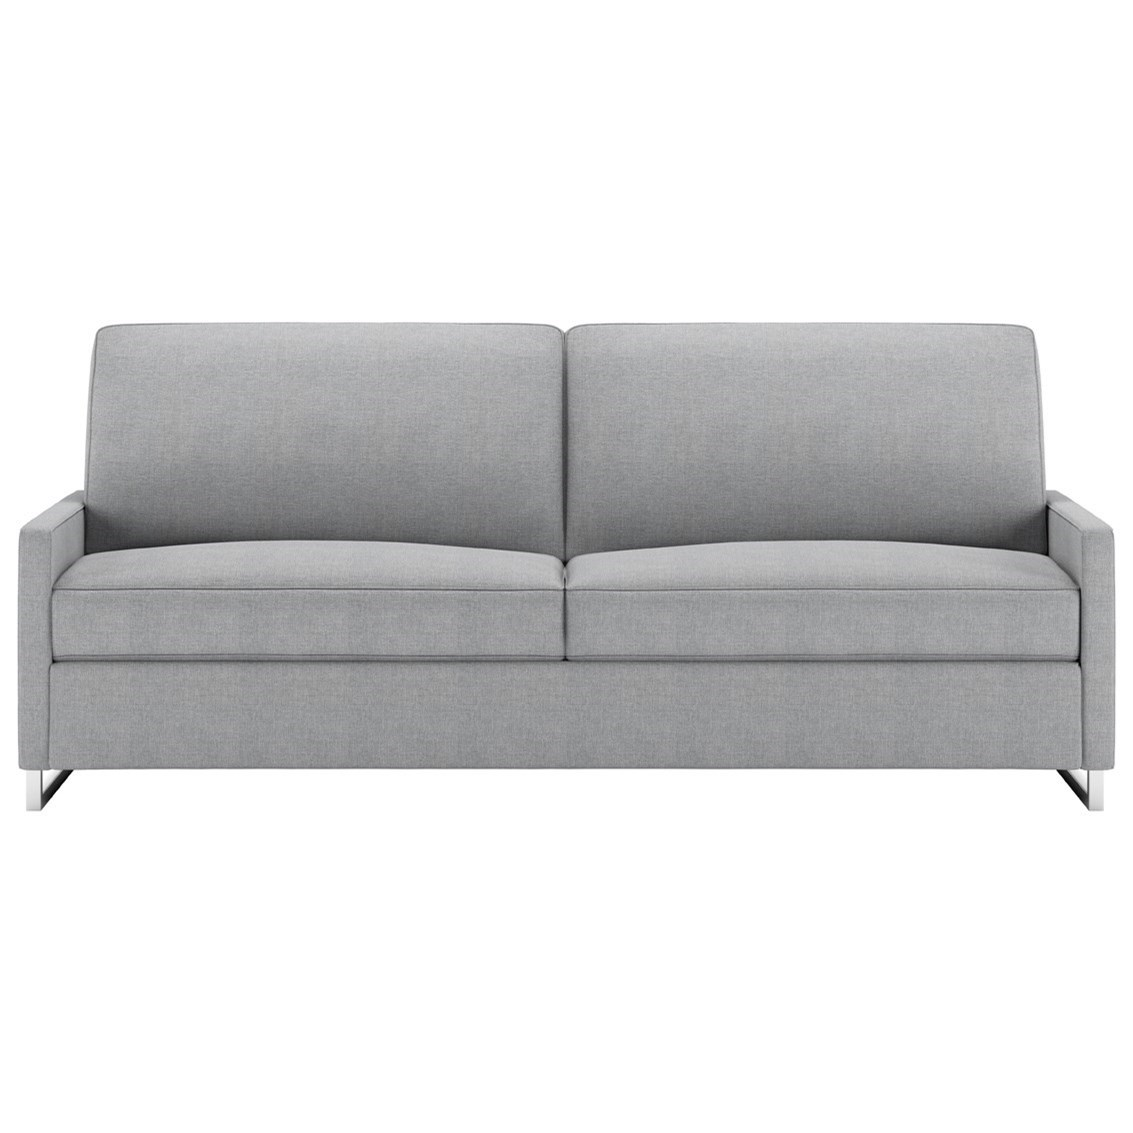 Brandt Sleeper Sofa by American Leather at Saugerties Furniture Mart